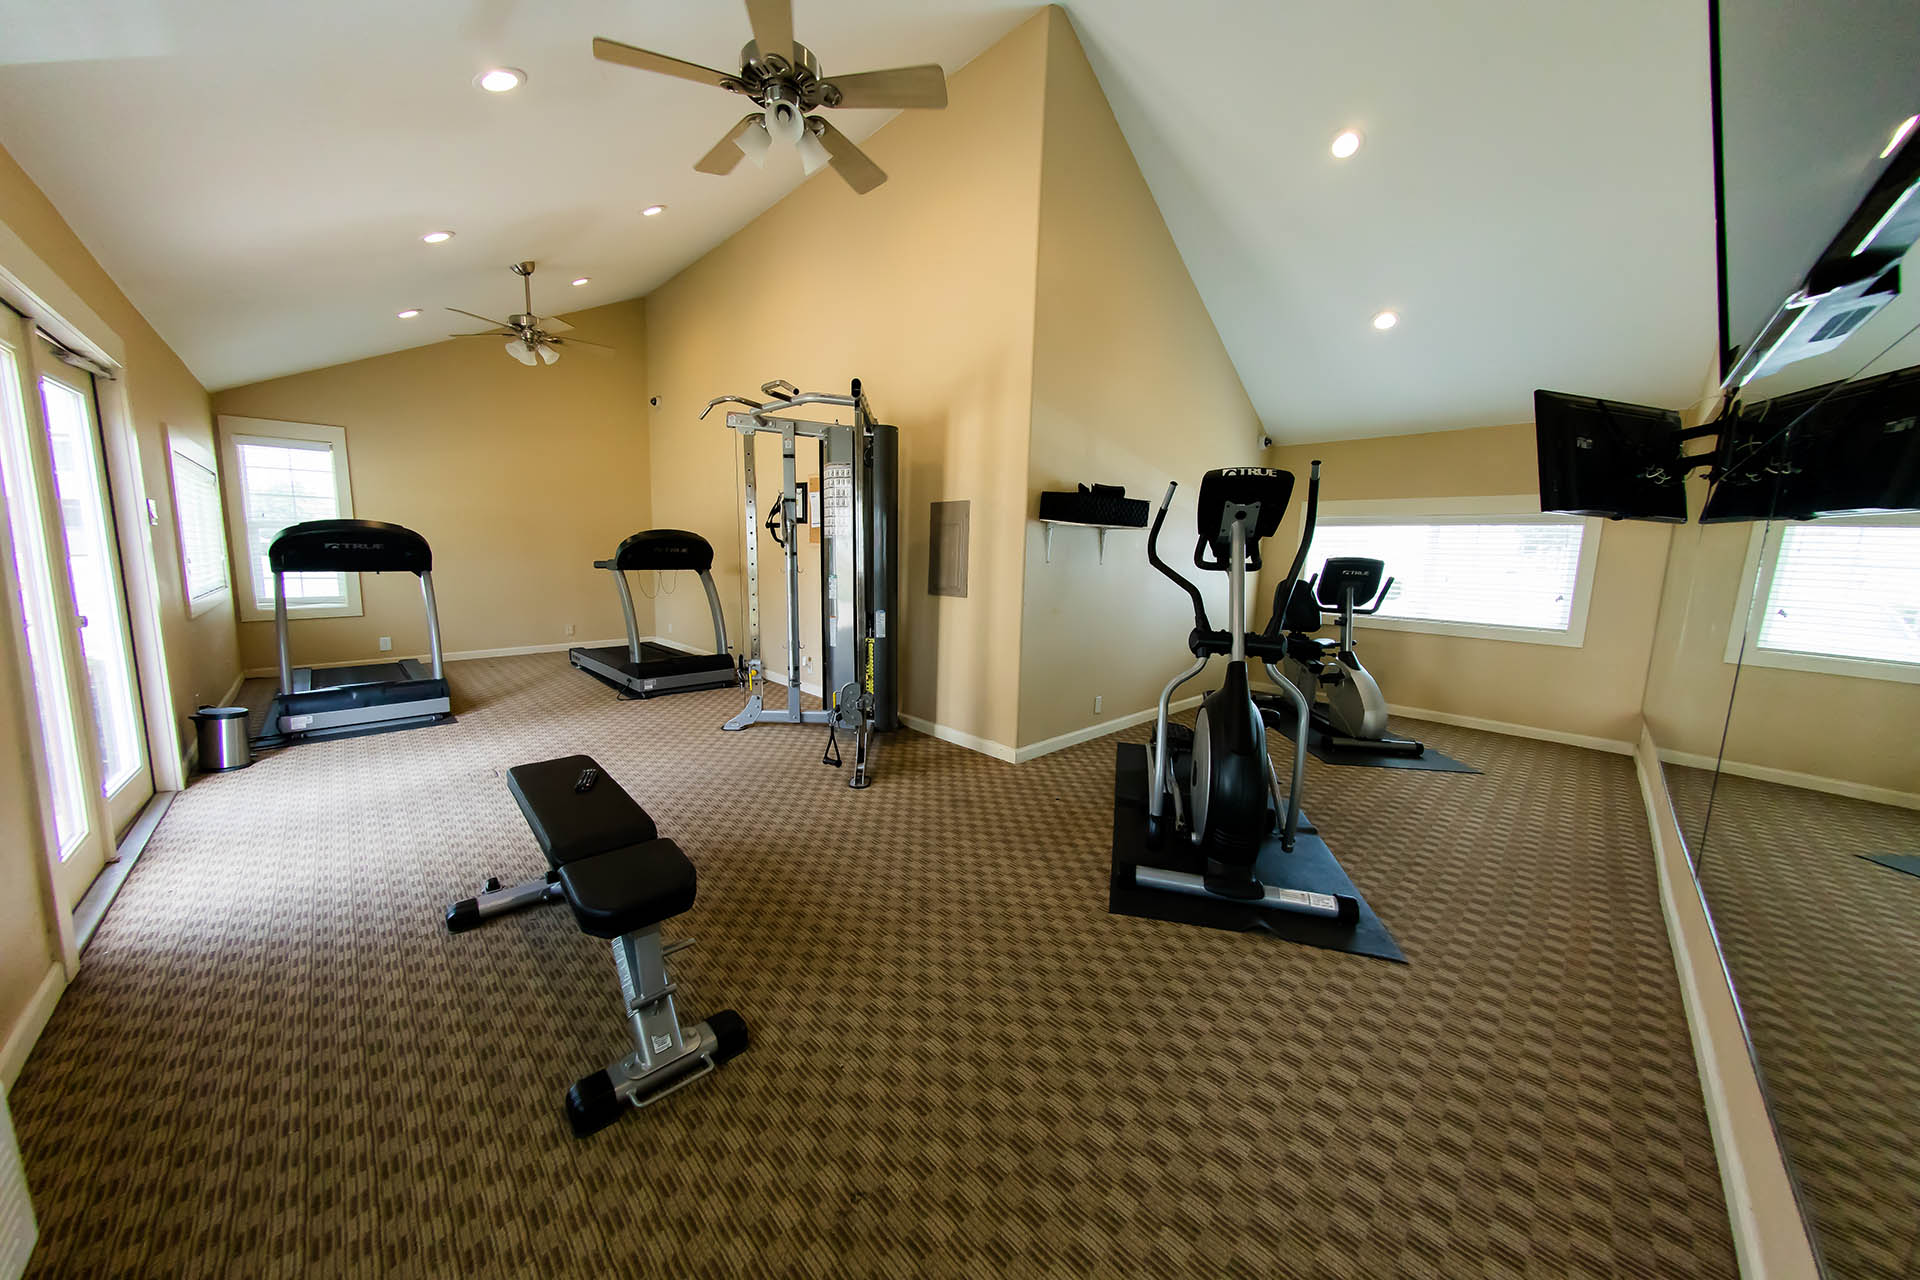 Health and Fitness Center at Aviare Place, Midland